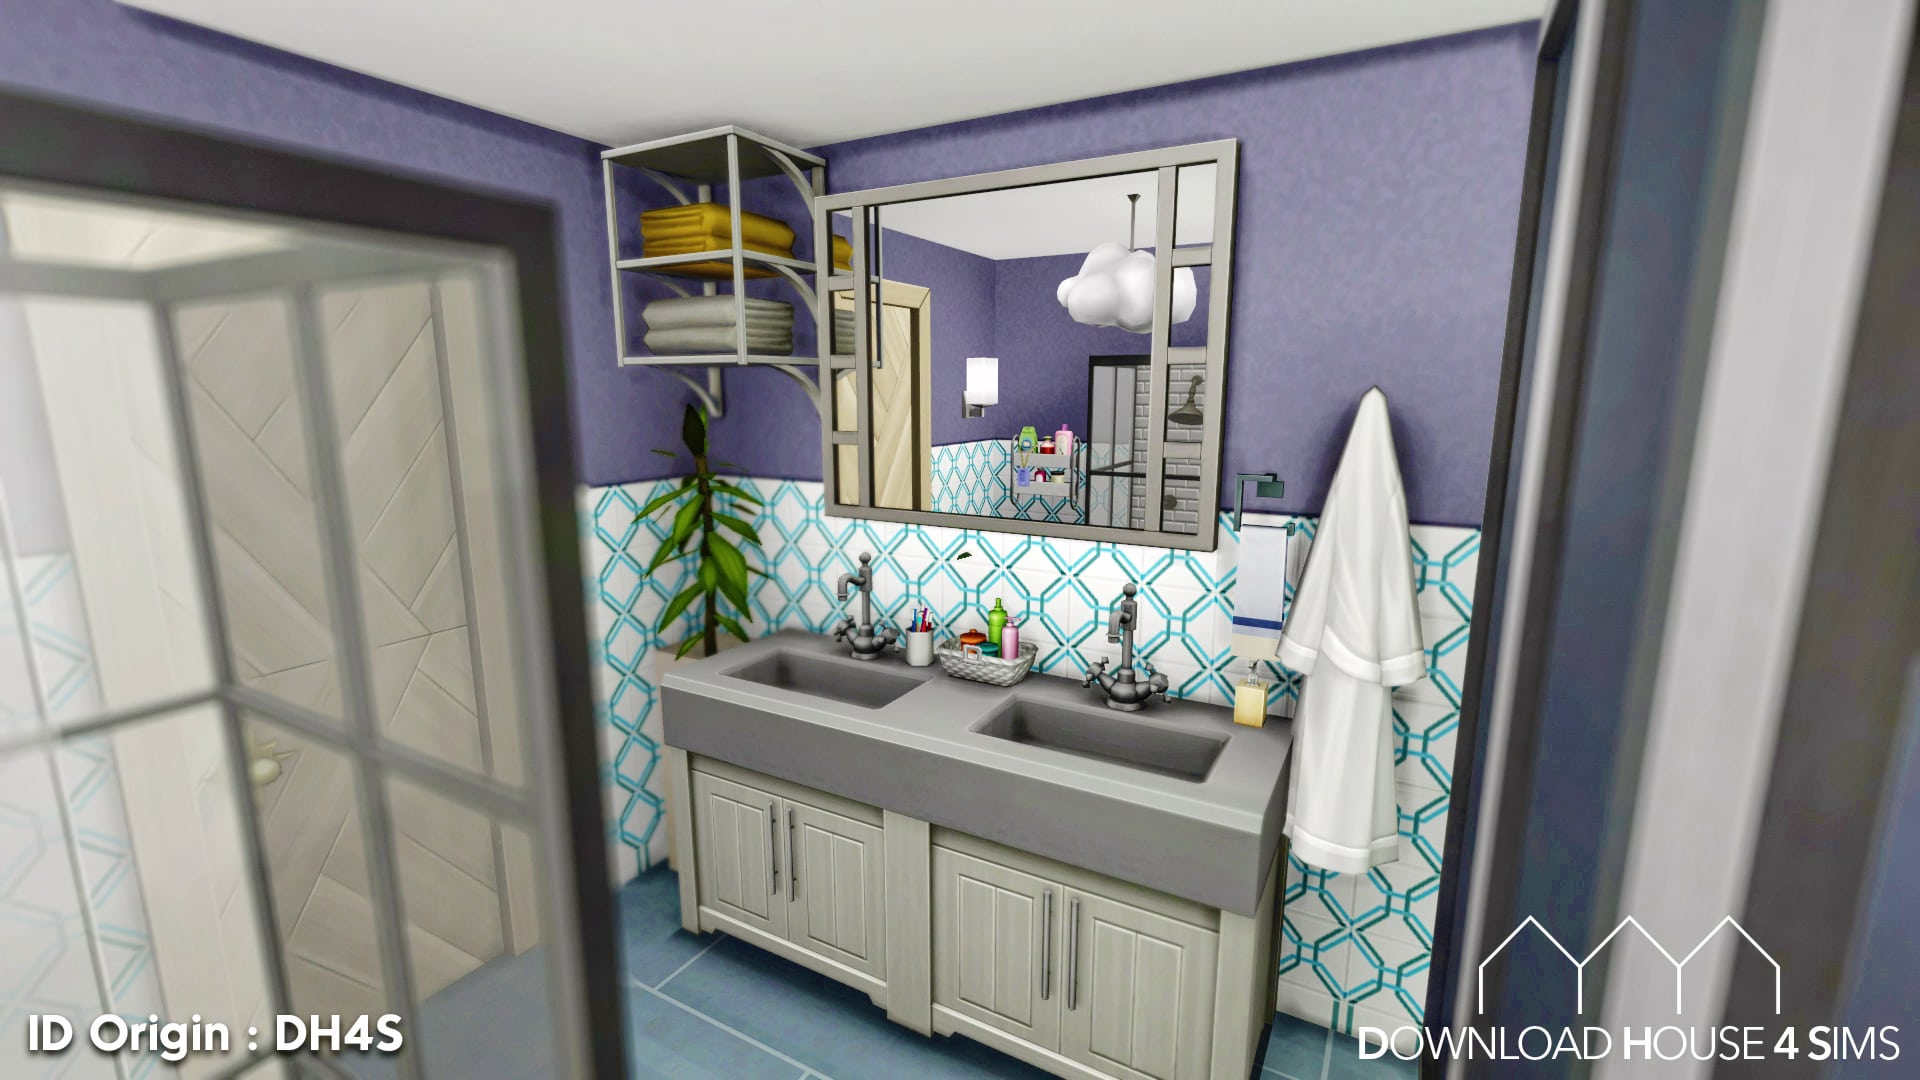 Family-Cottage-Sims-4-DH4S-download-house-4-sims-16